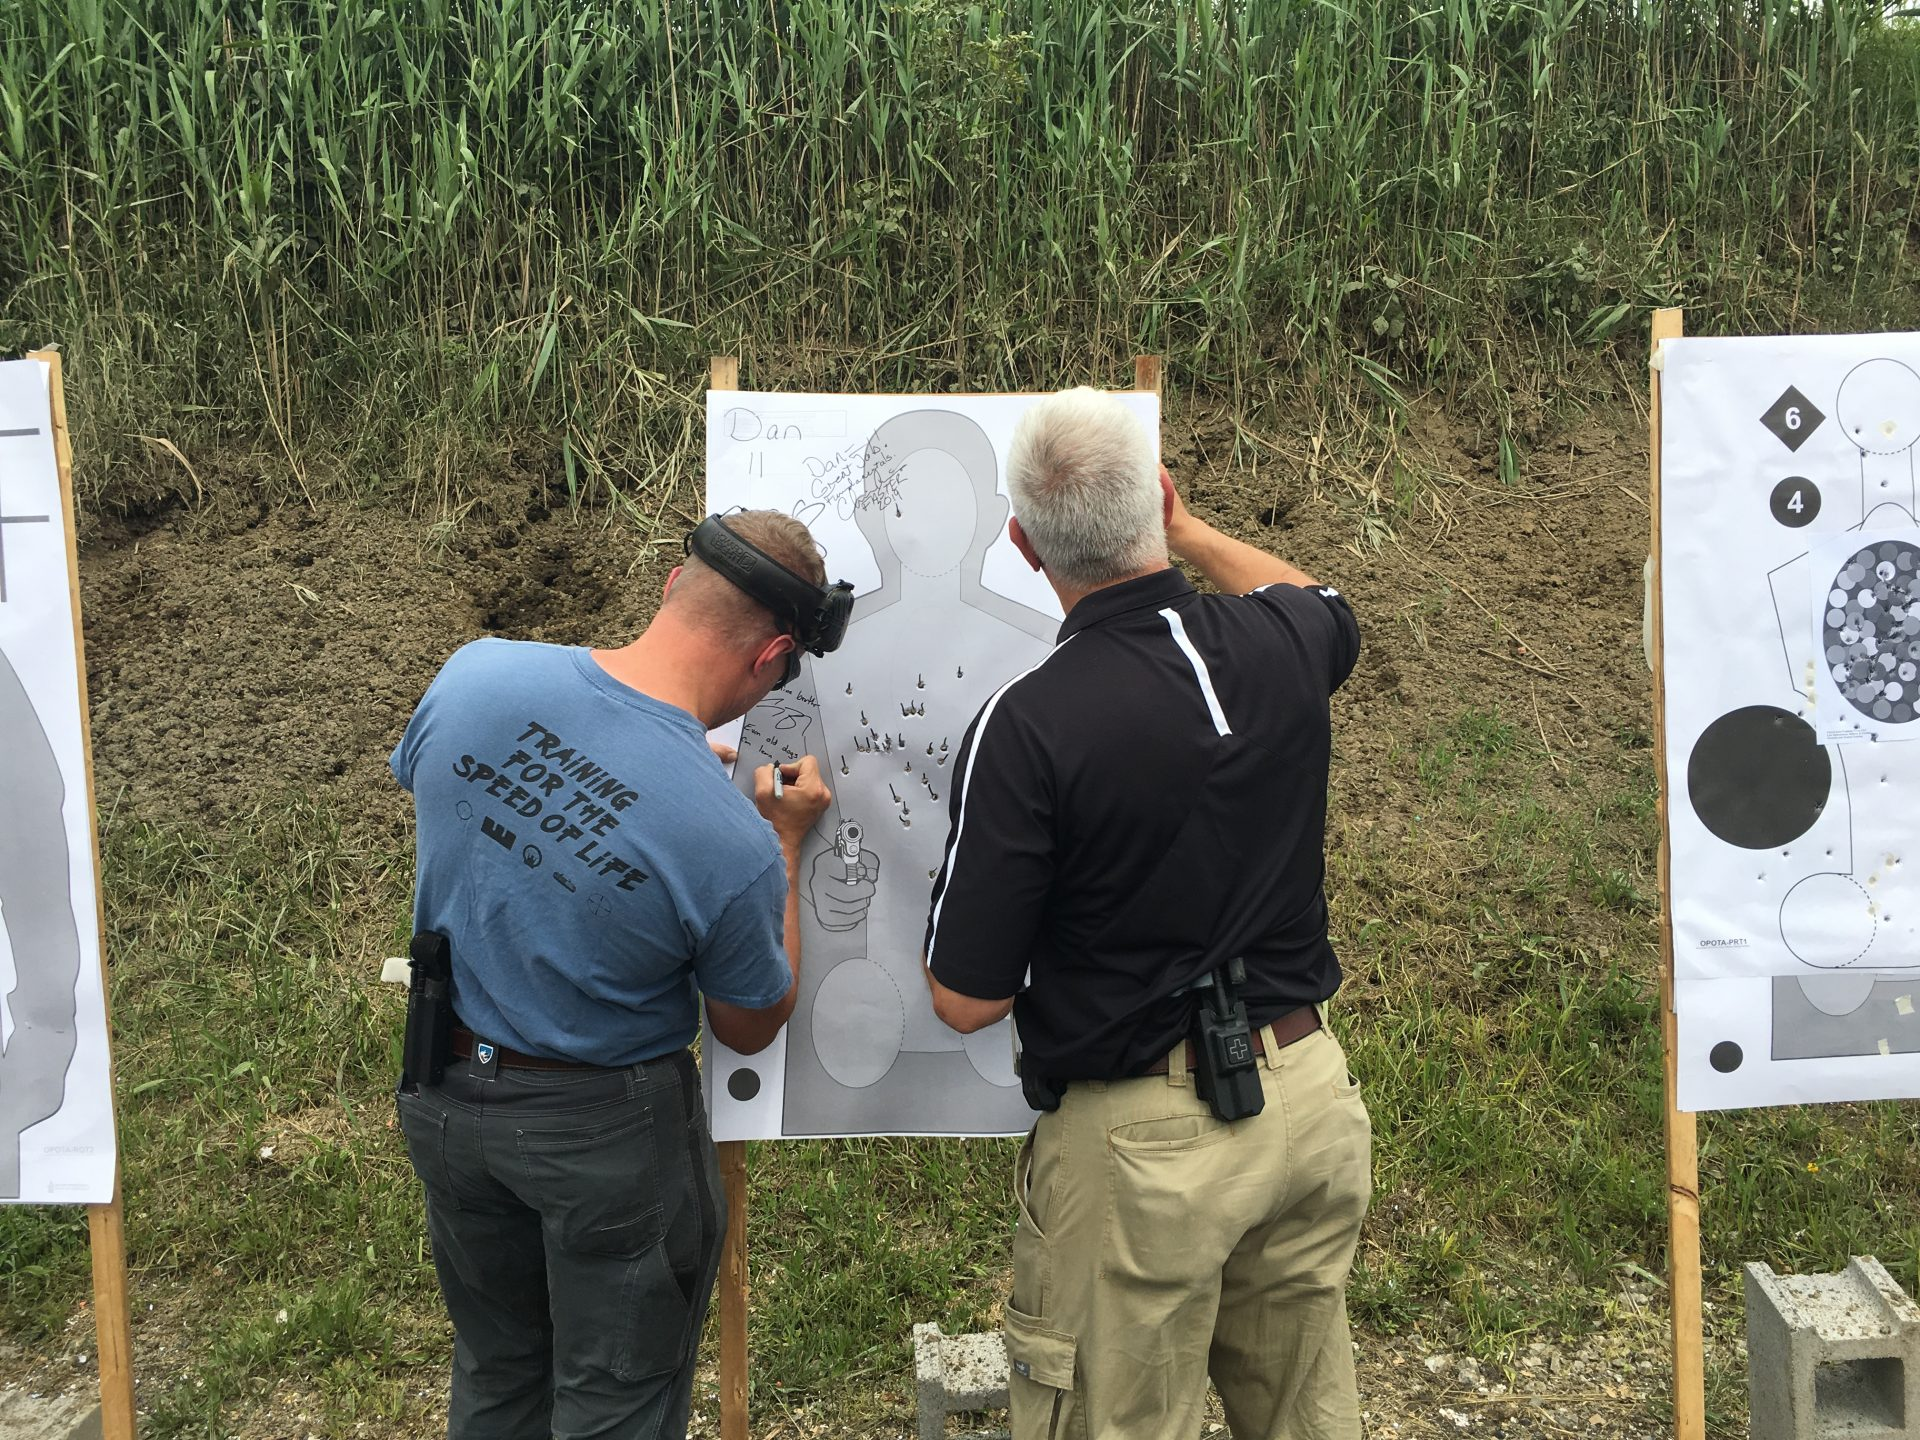 FASTER's Andrew Blubaugh and Joe Eaton score the targets of teachers hoping to pass their training.